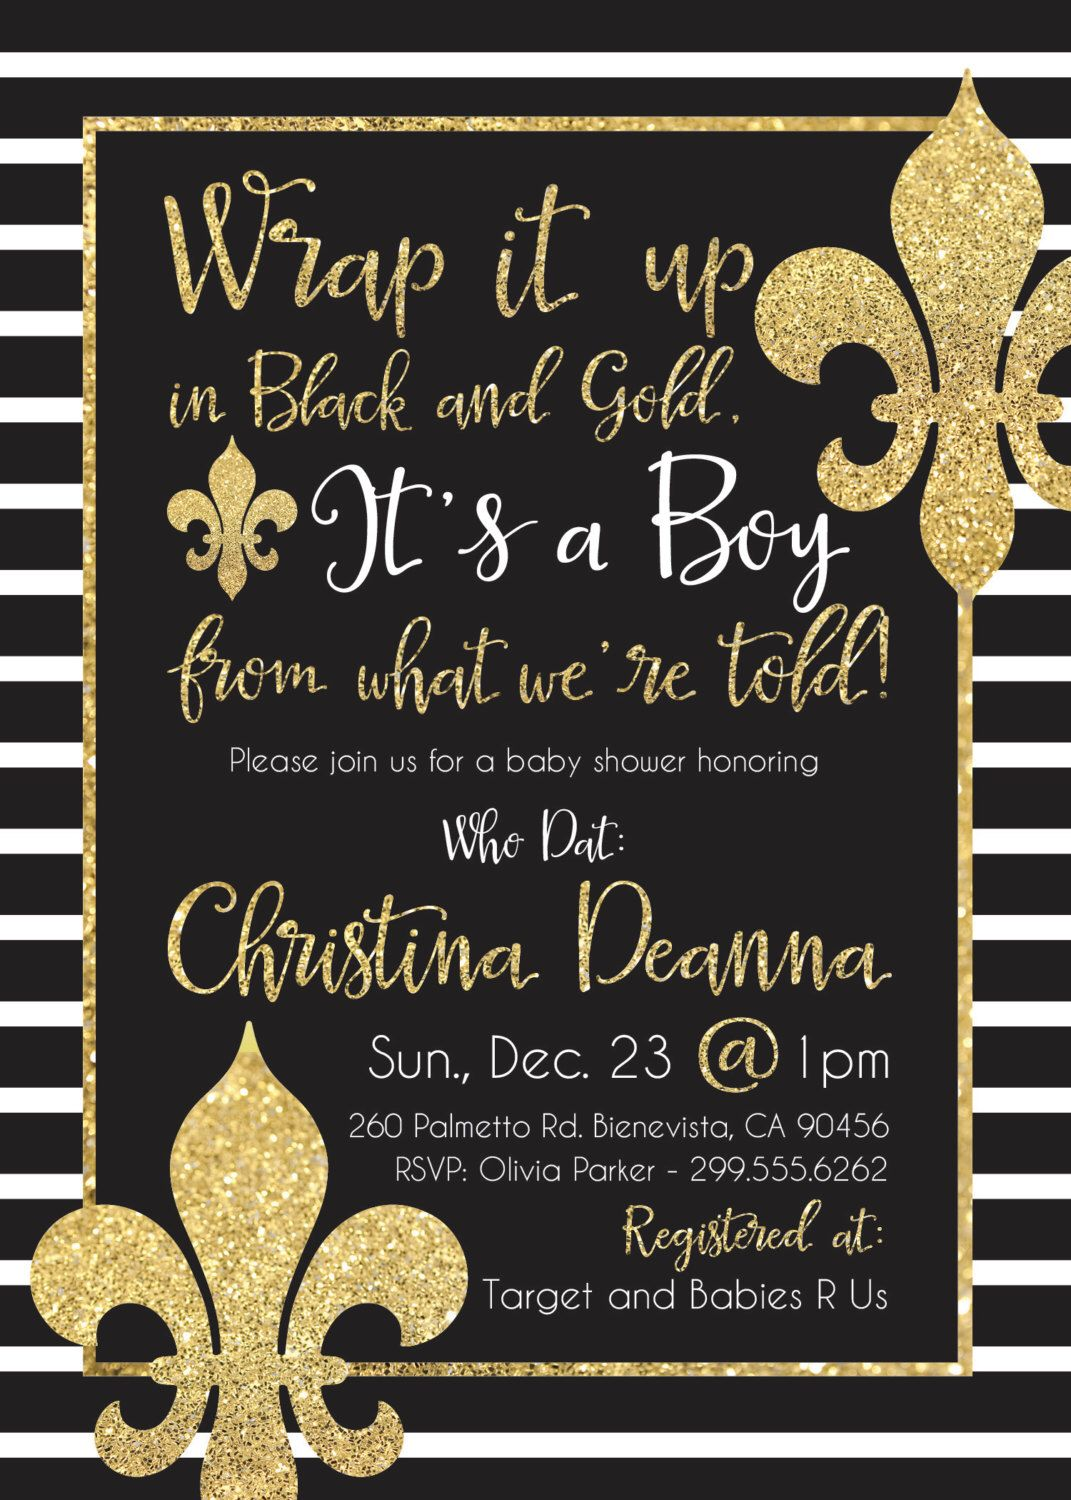 new orleans saints who dat black and gold baby shower